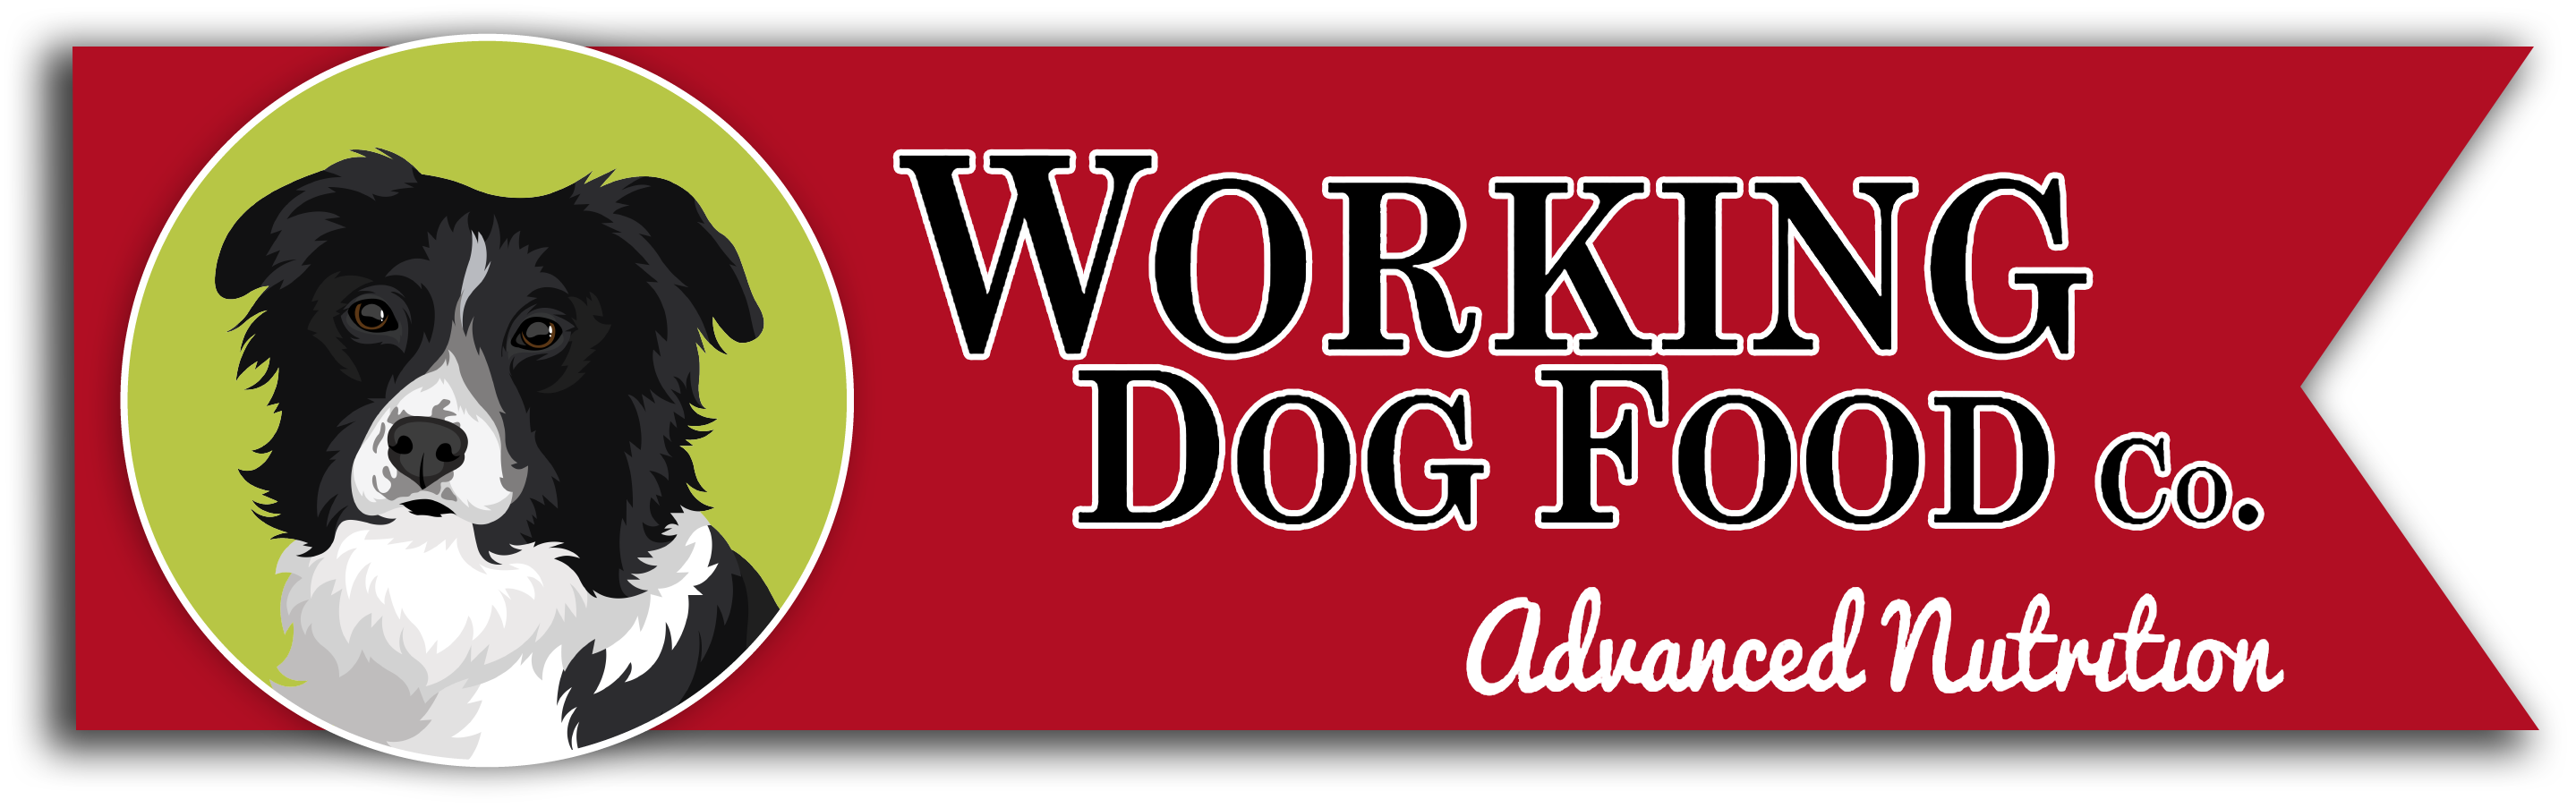 Working Dog Food Co.